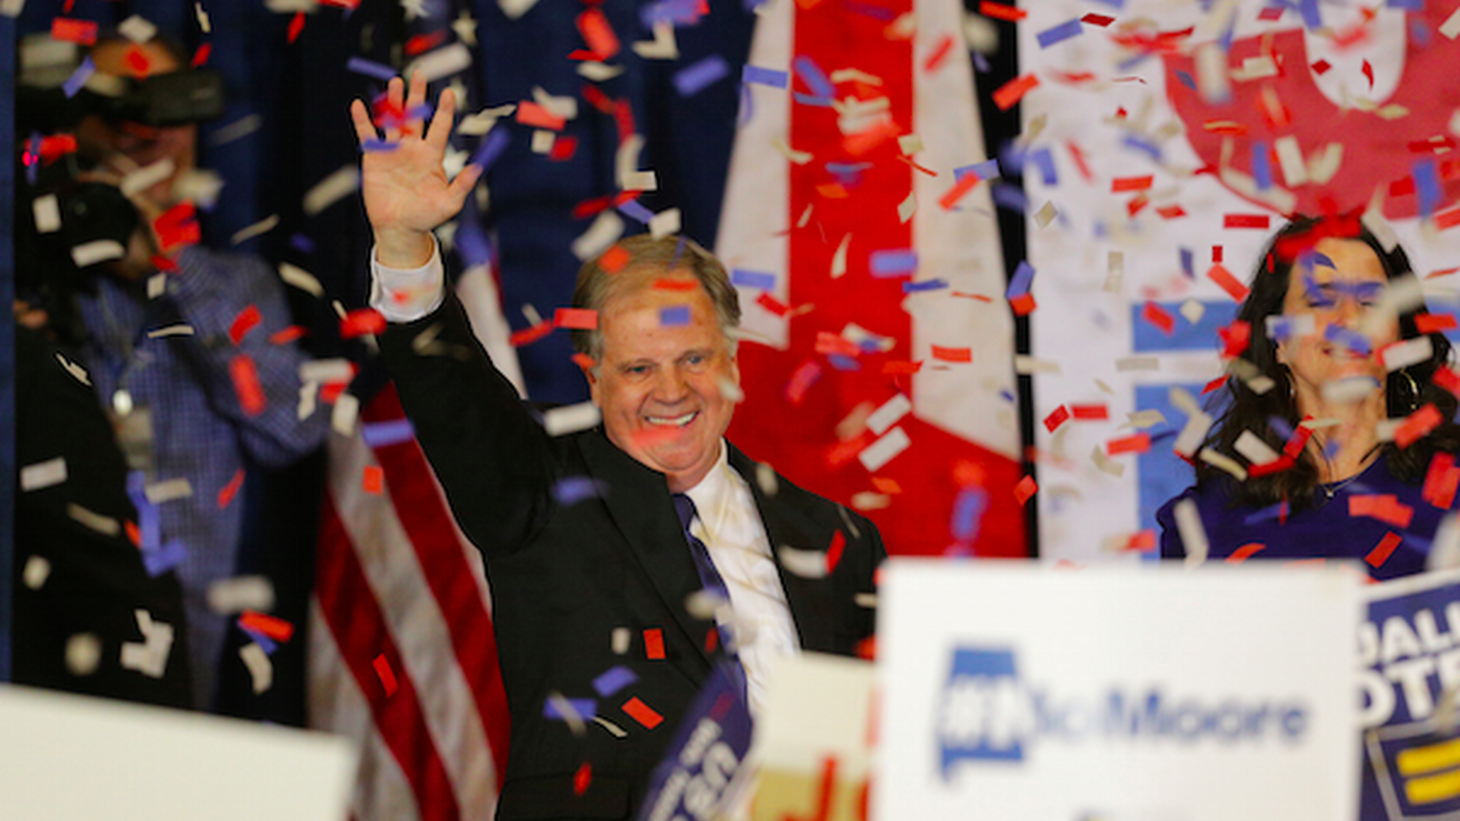 Democrat Doug Jones celebrated a surprise victory last night over Republican Roy Moore in ruby-red Alabama. A year ago, Donald Trump won in Alabama by 28 points.